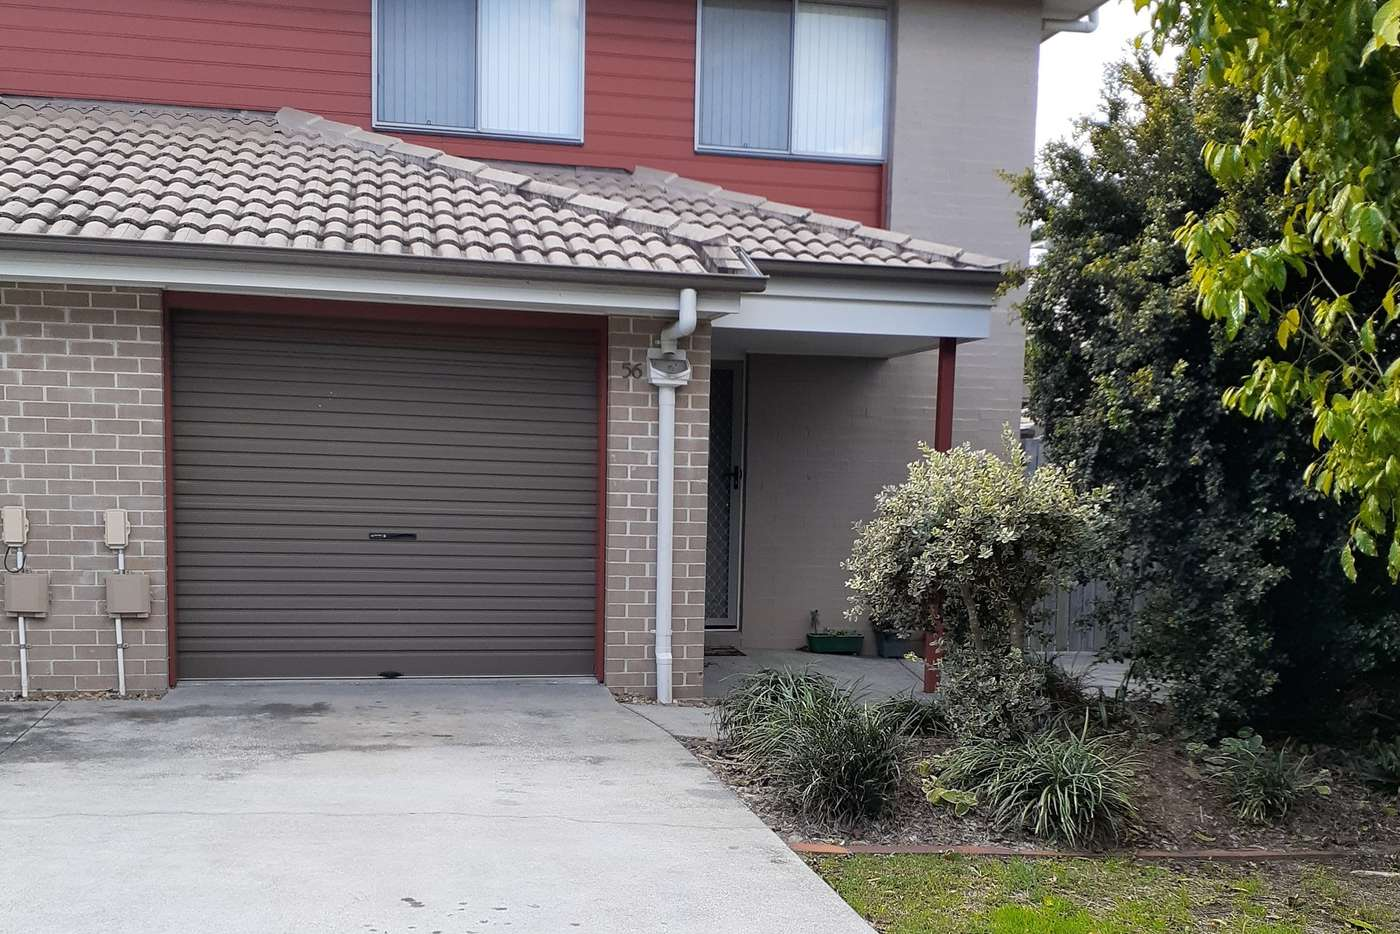 Main view of Homely townhouse listing, 56/99 Peverell St, Hillcrest QLD 4118